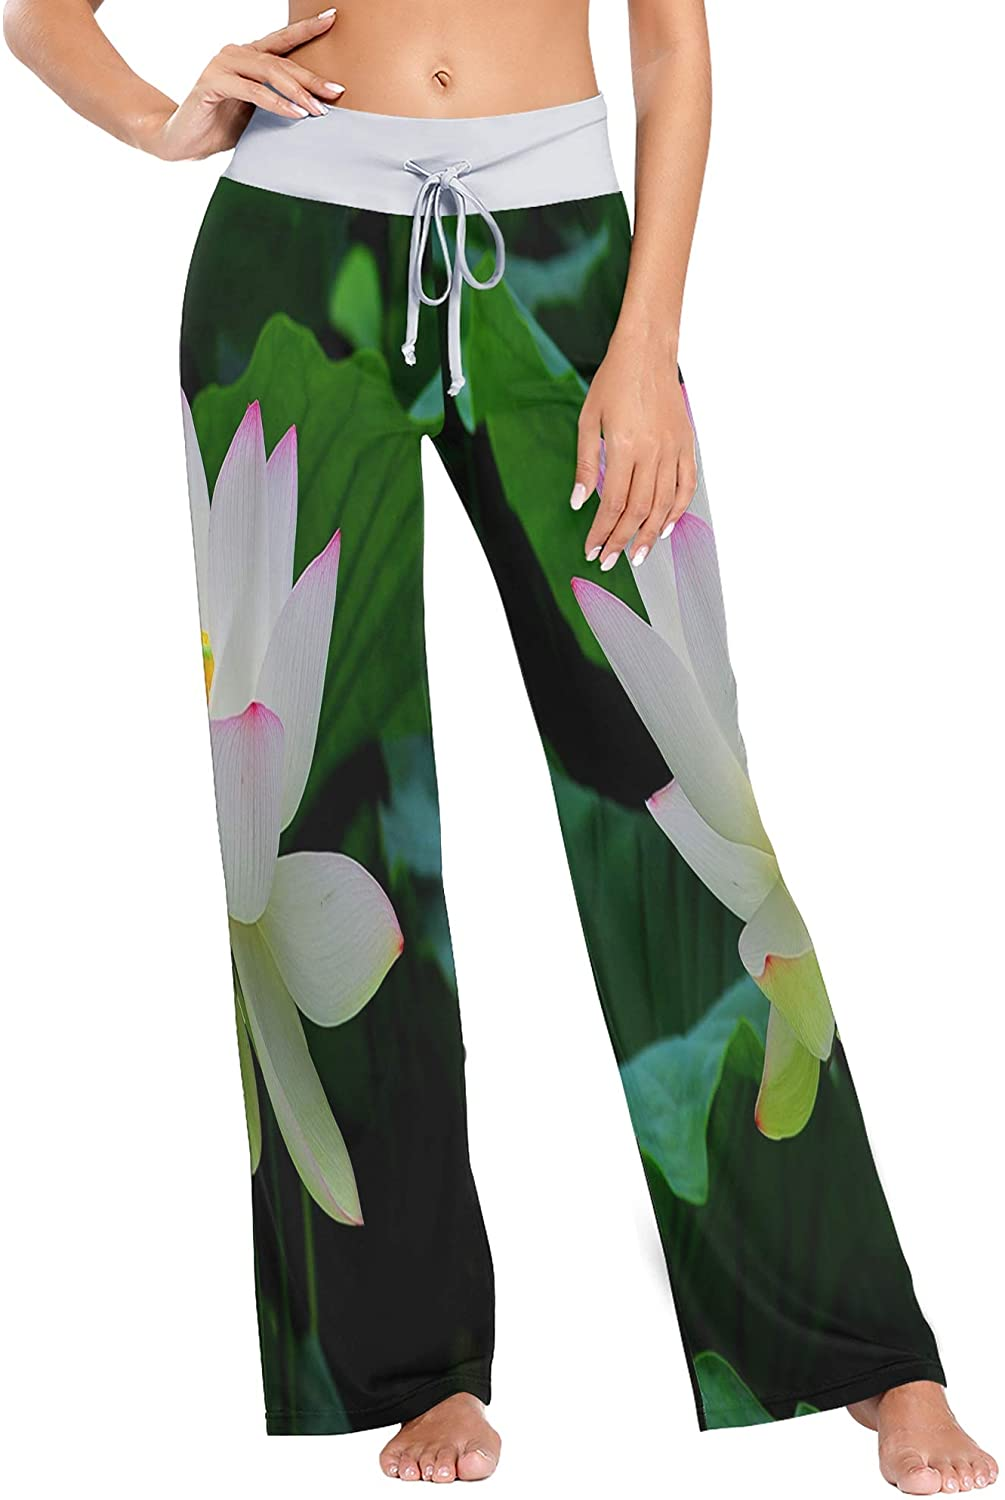 SLHFPX Womens Pajama Lounge Pants Taj Mahal Palace Colorful Oil Painting Wide Leg Casual Palazzo Pj Sleep Pants Girls